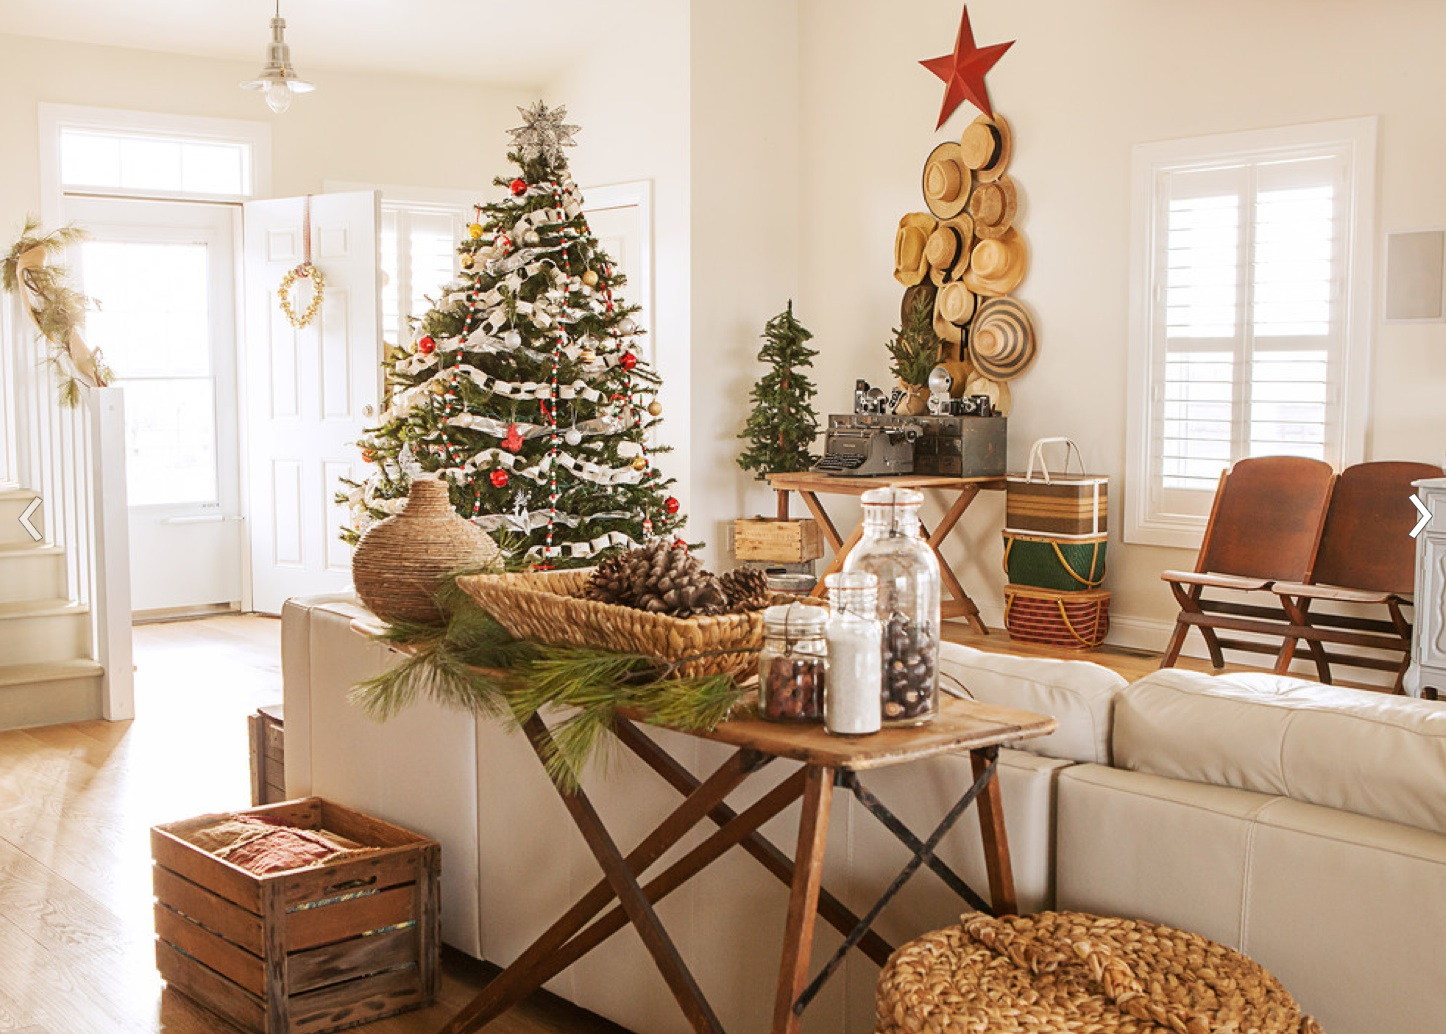 file name rustic country christmas decorating ideas navidad